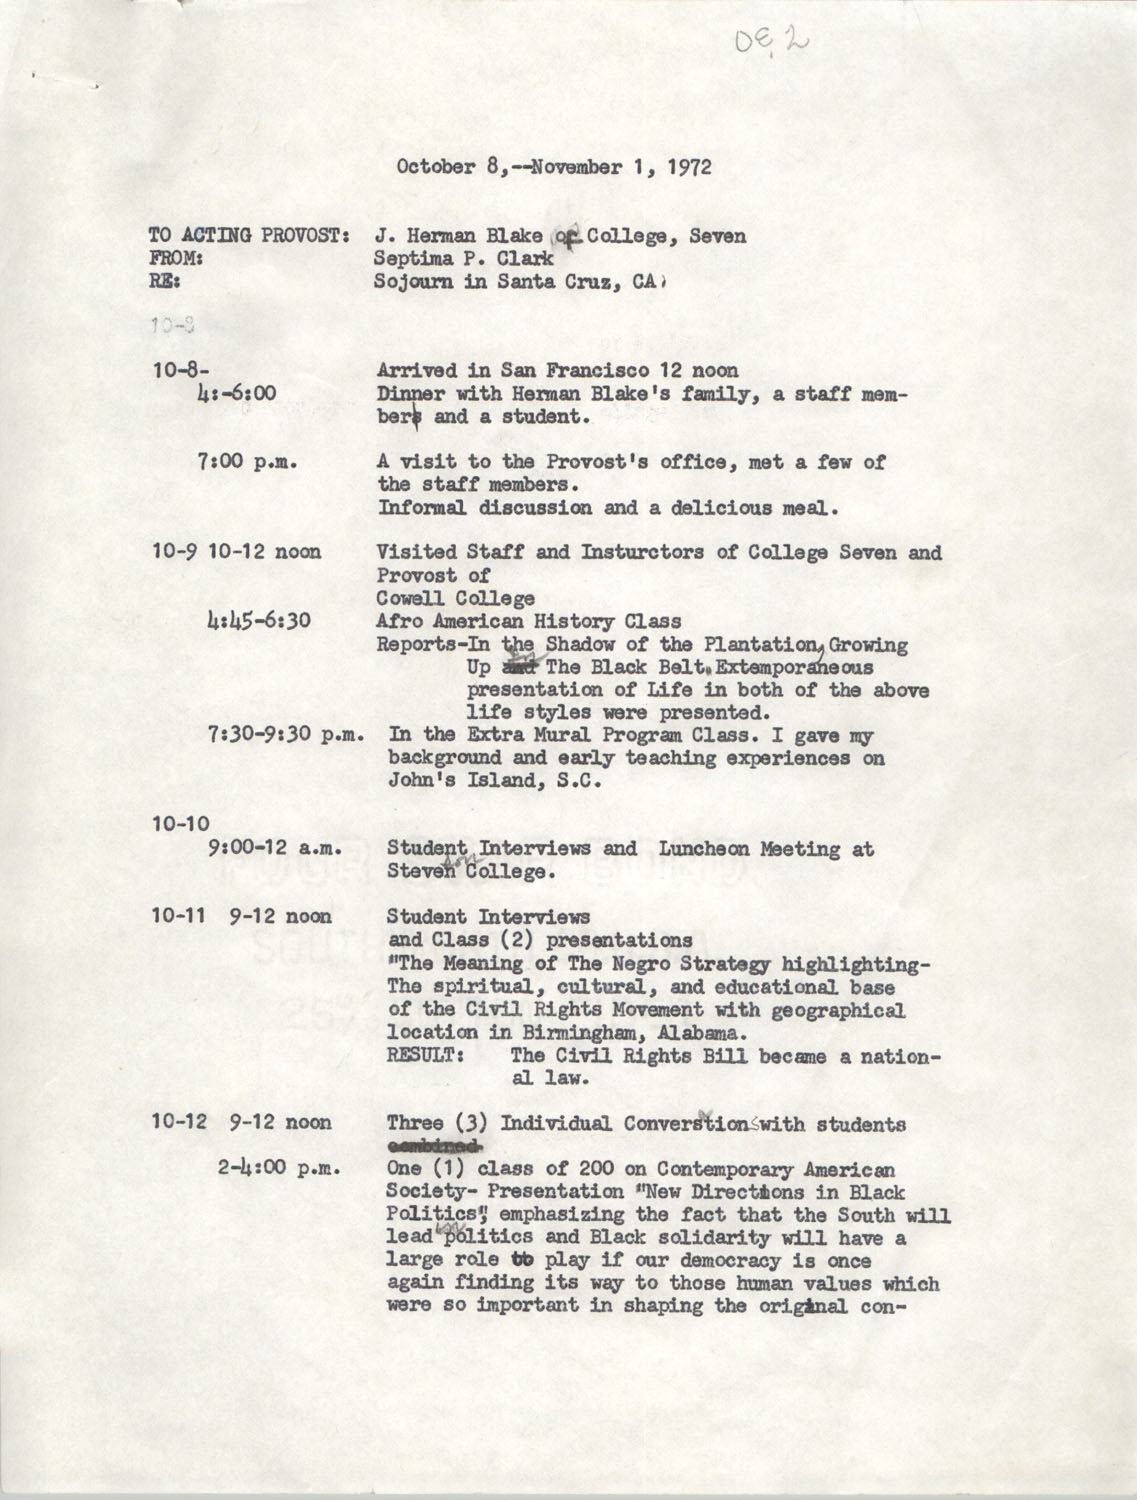 Schedule for Sojourn in Santa Cruz, College Seven, October 8 to November 1, 1972